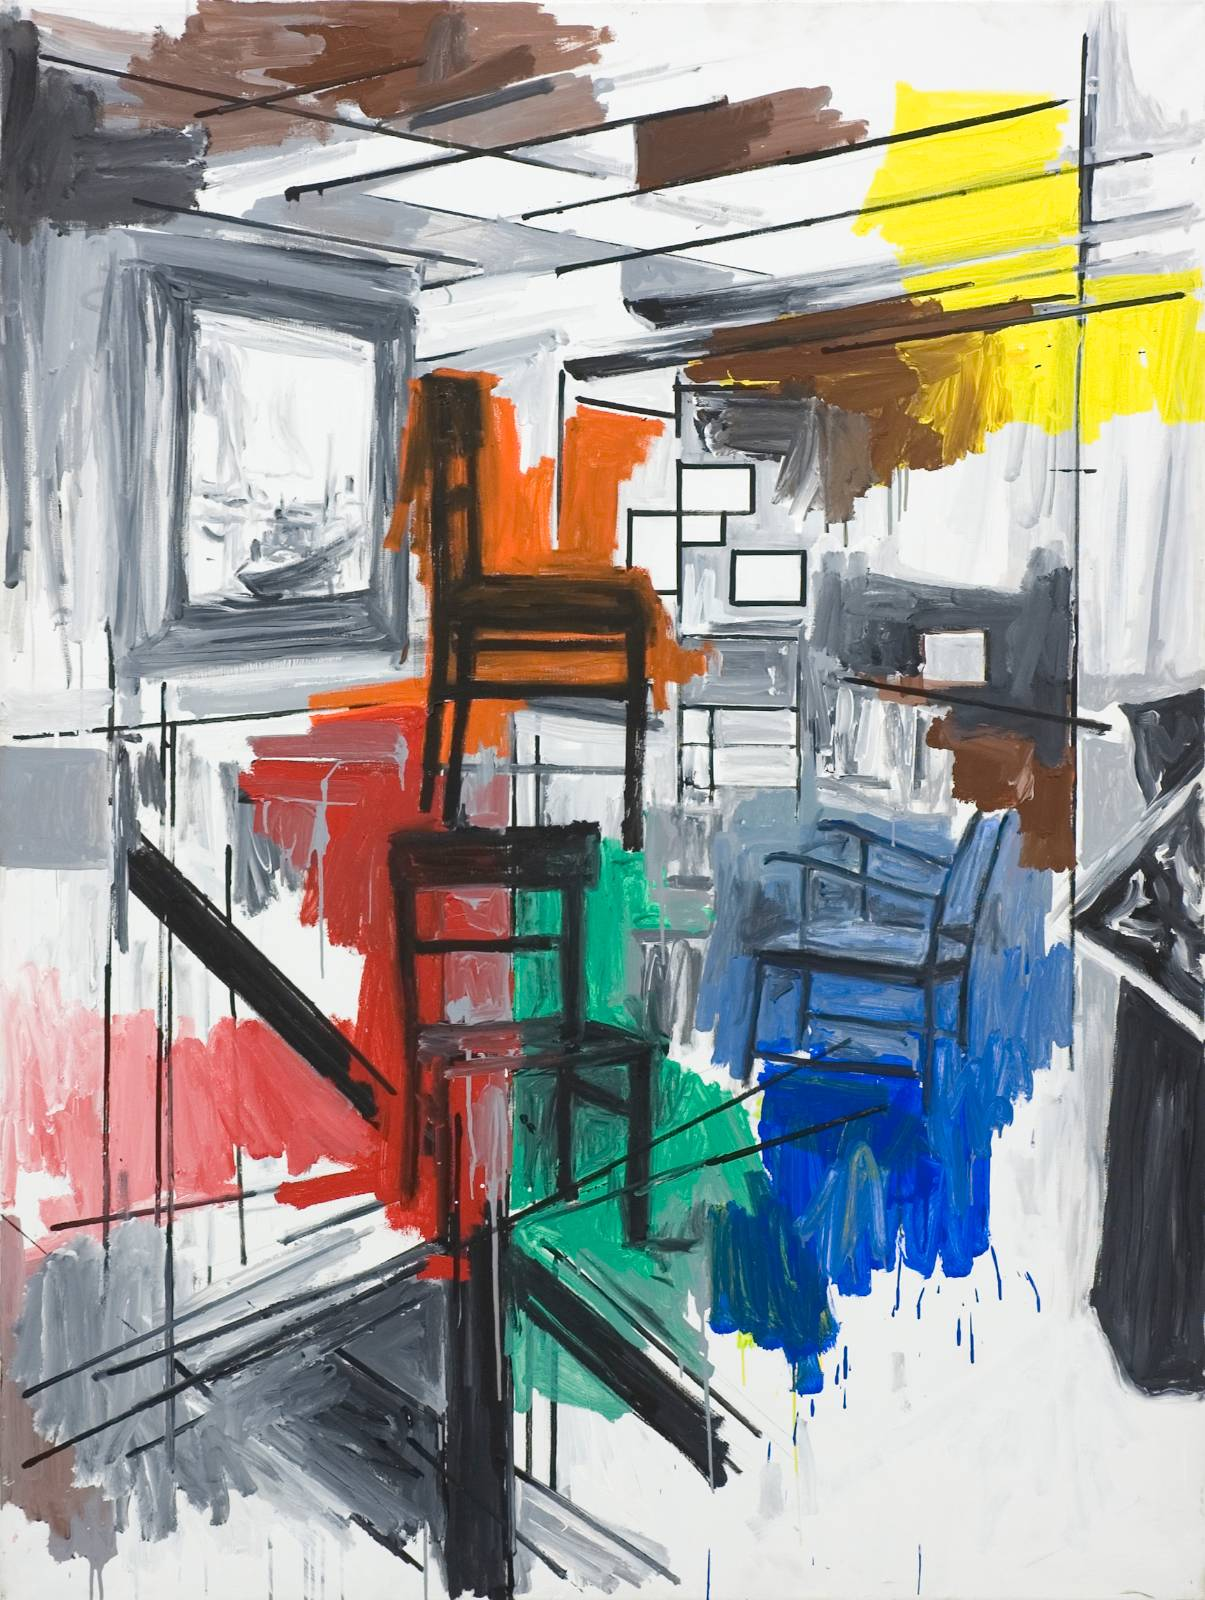 Untitled, 1995, acrylic on canvas, 200 x 150 cm